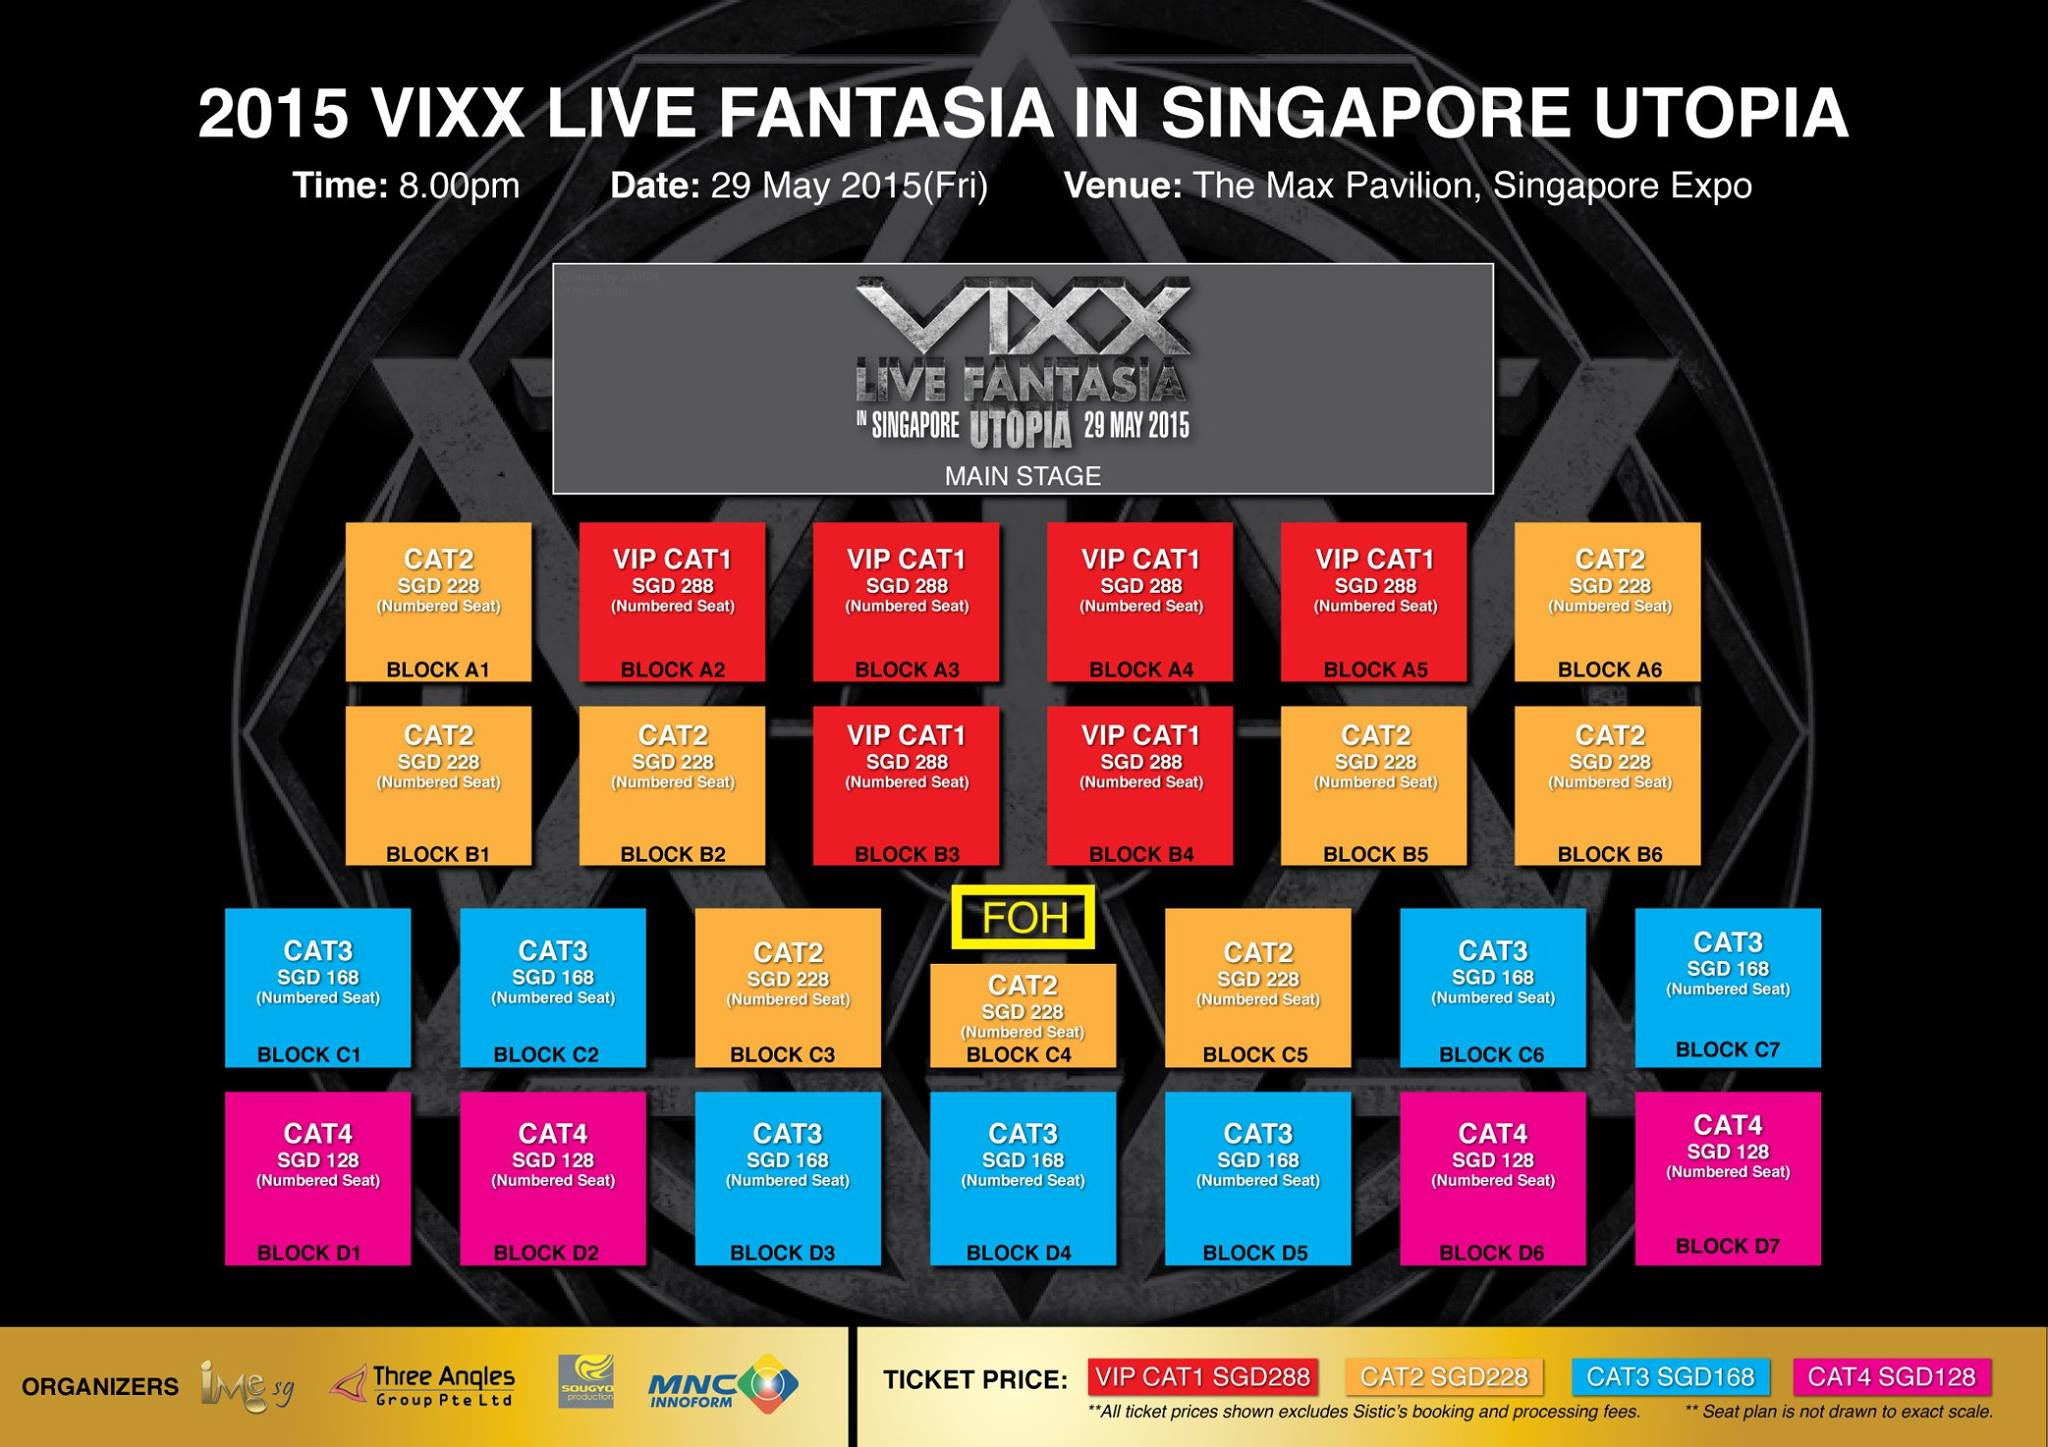 vixx-live-fantasia-utopia-in-singapore-2015